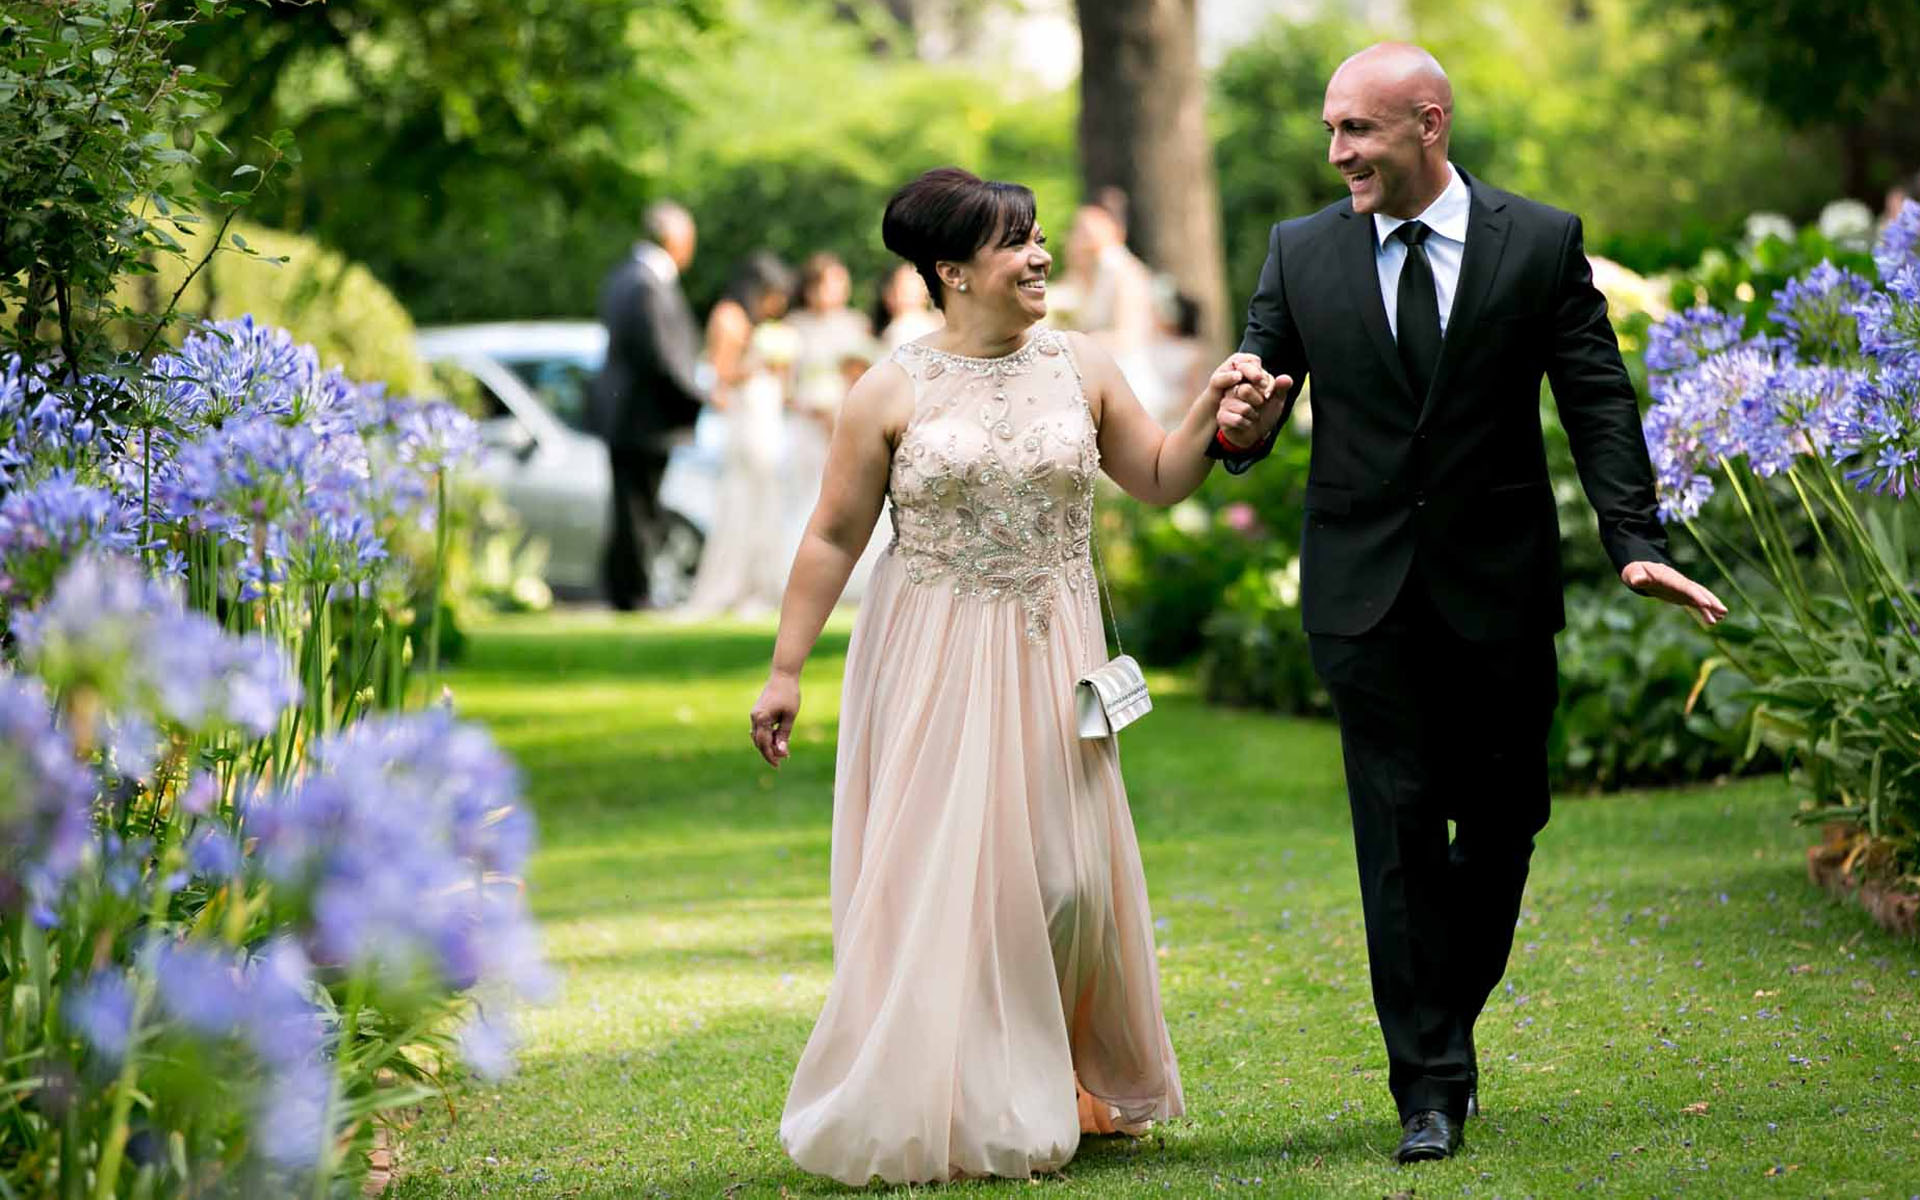 All about Marius Barnard the Wedding coordinator